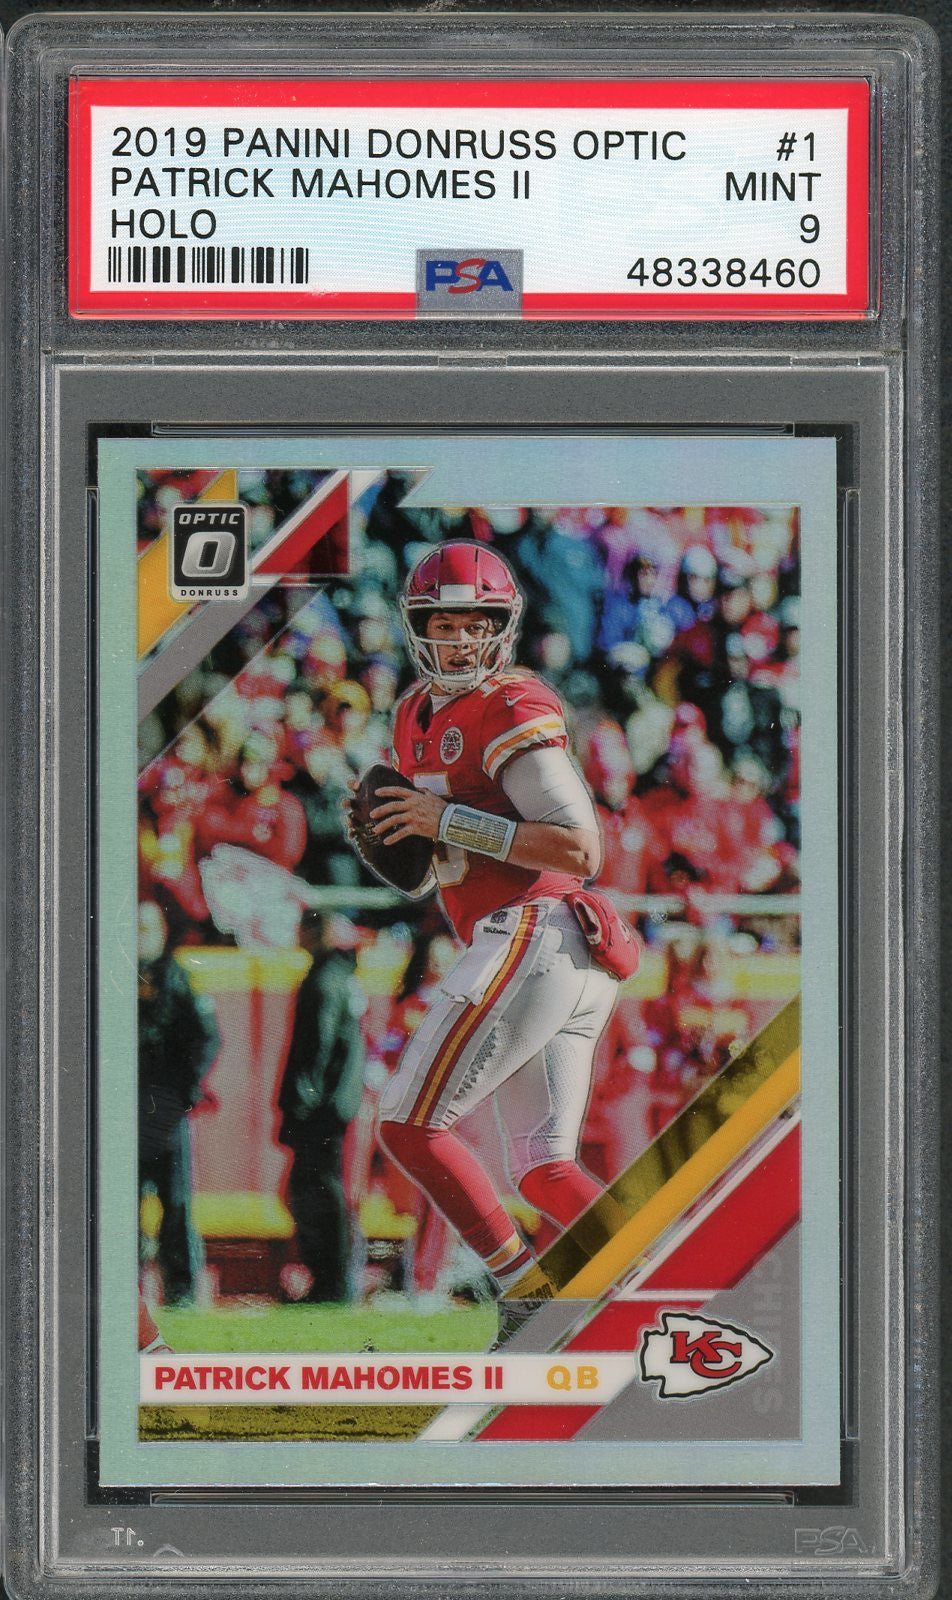 Patrick Mahomes 2019 Panini Donruss Optic Holo Prizm Football Card #1 Graded PSA 9 MINT-Powers Sports Memorabilia